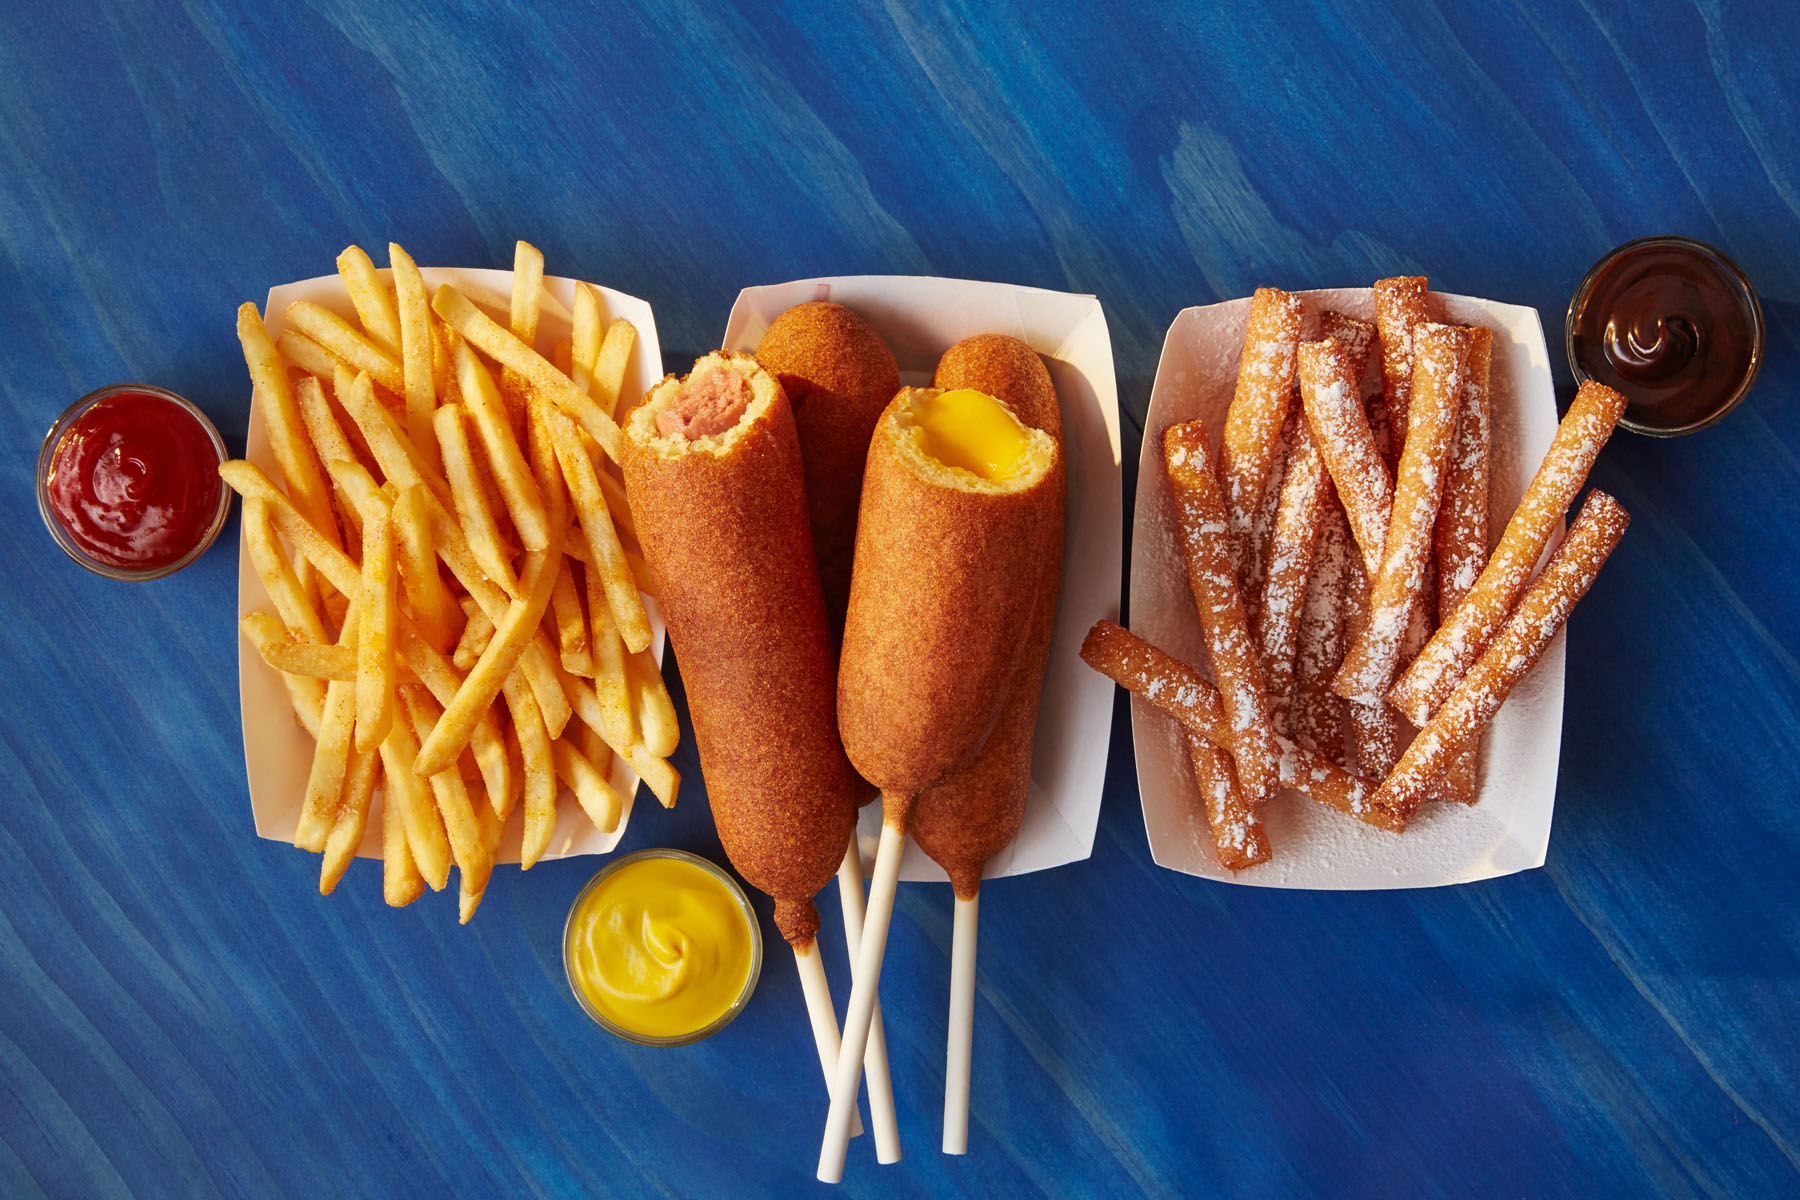 Fries, hot dogs and funnel cake fries